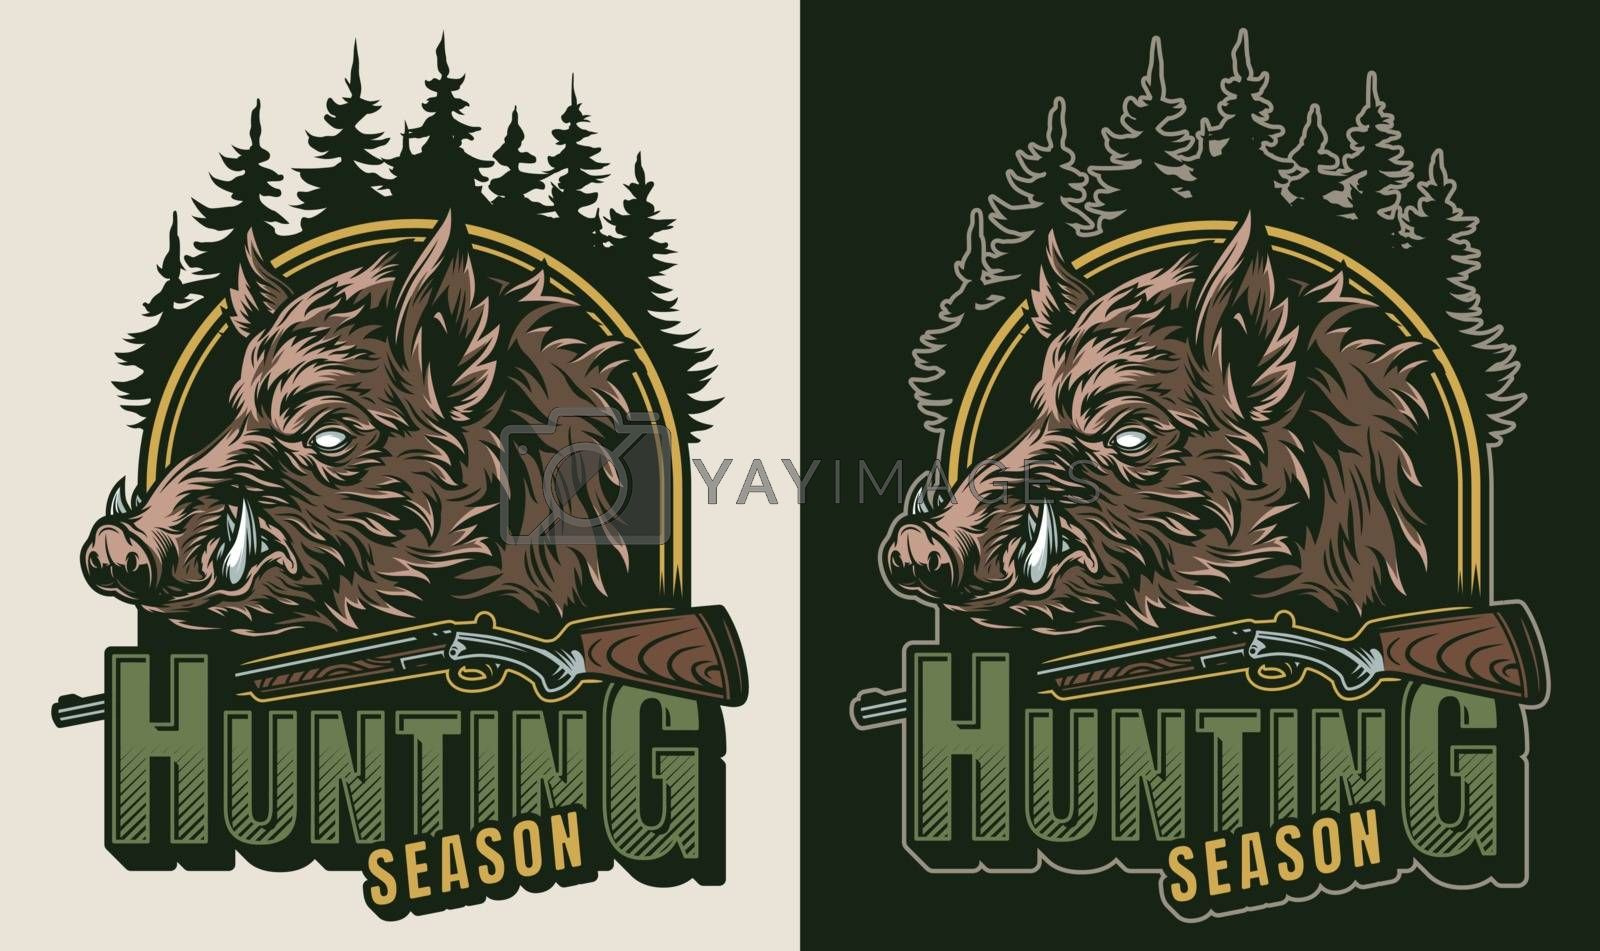 Vintage hunting colorful logo with weapon trees and serious wild boar head isolated vector illustration